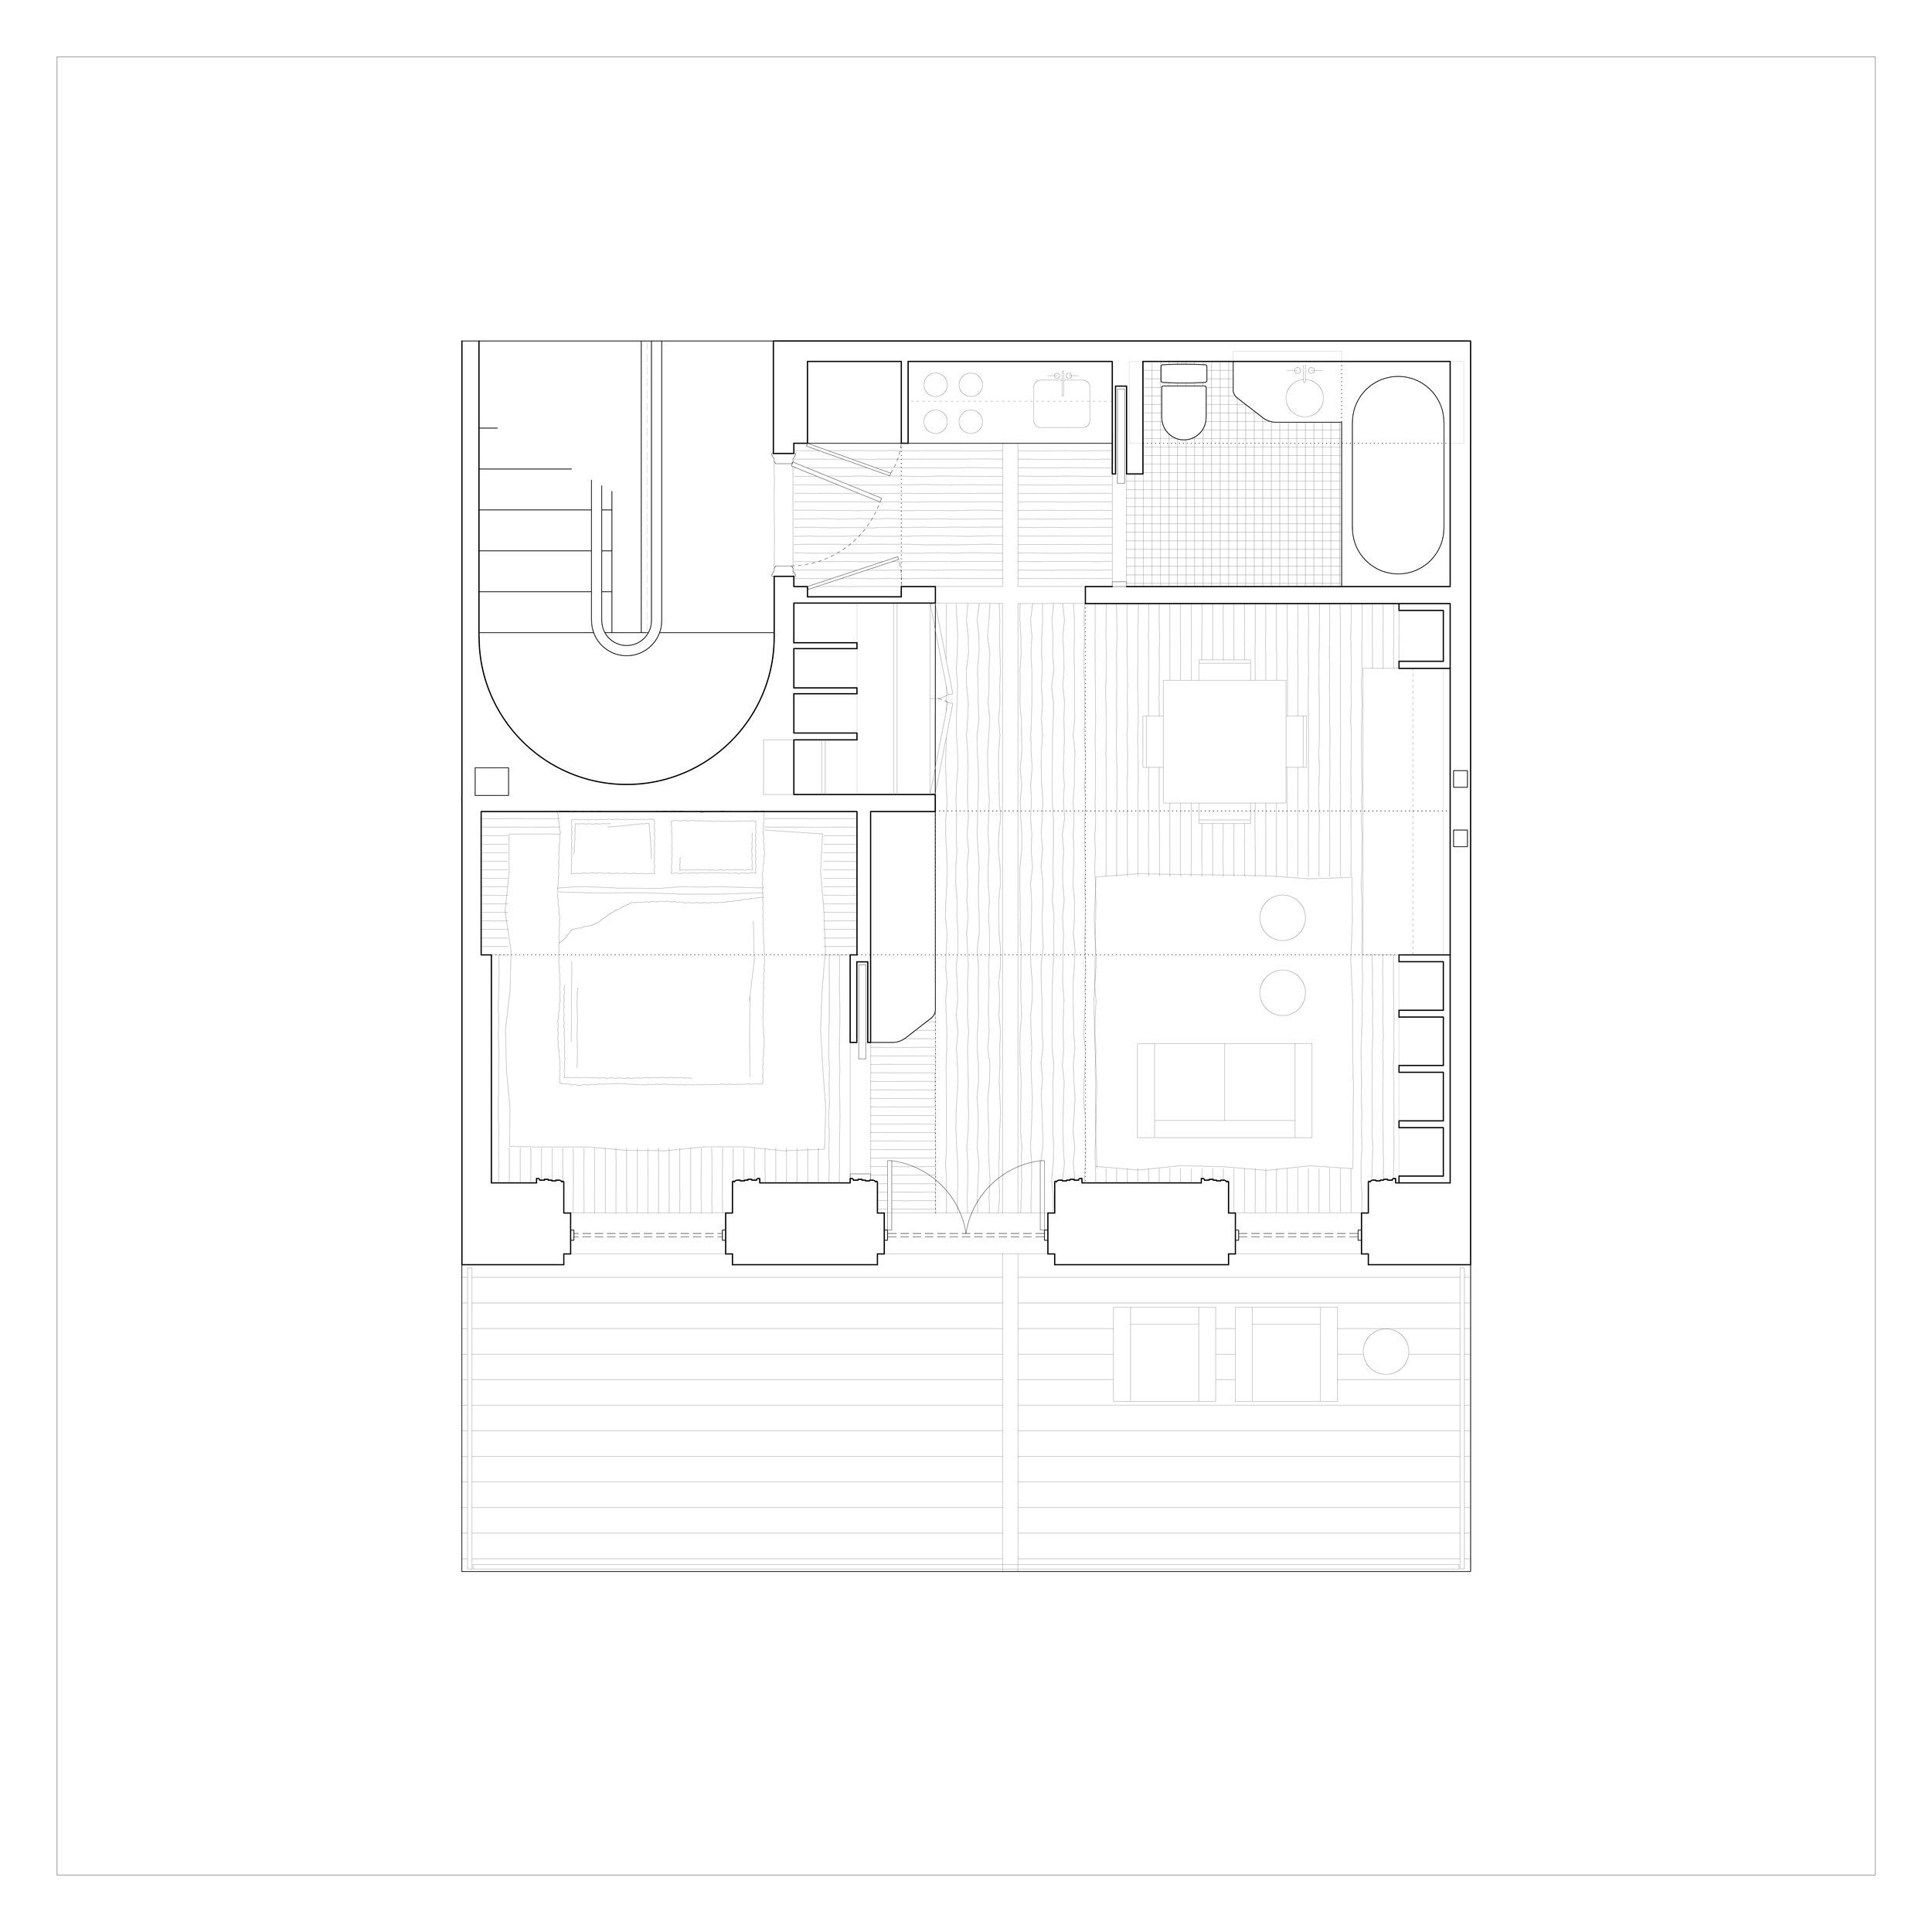 01_Series_FloorPlans-02.jpg